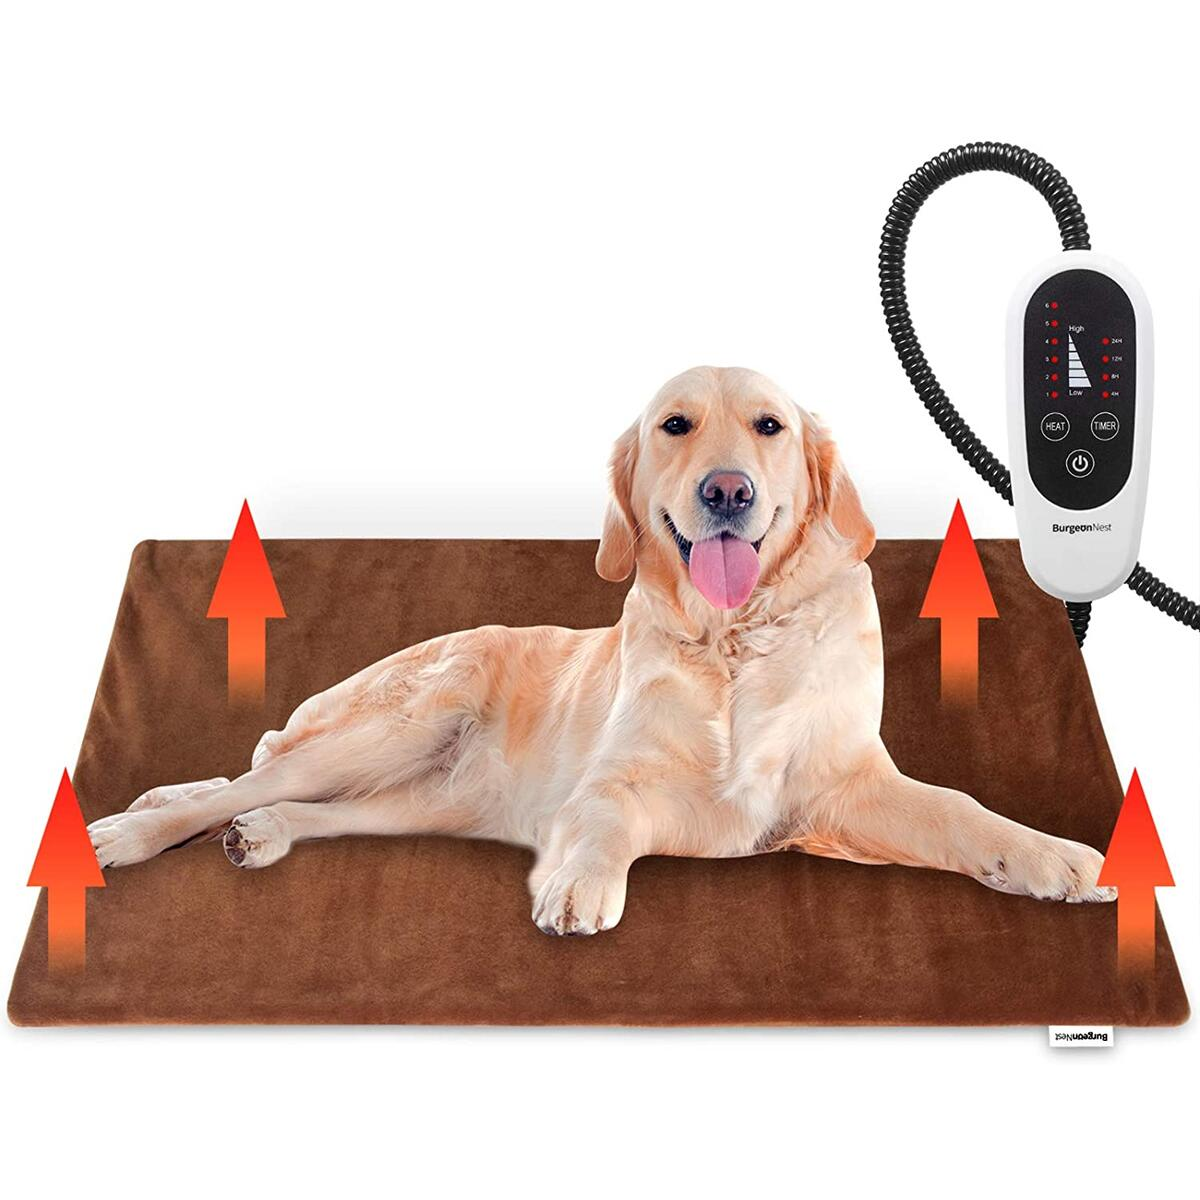 BurgeonNest Pet Heating Pad for Dogs Cats- 28 X 16 INCH, Upgraded Electric Heated Dog Cat Pad with Timer Pet Bed Warmer Blanket Auto Power Off